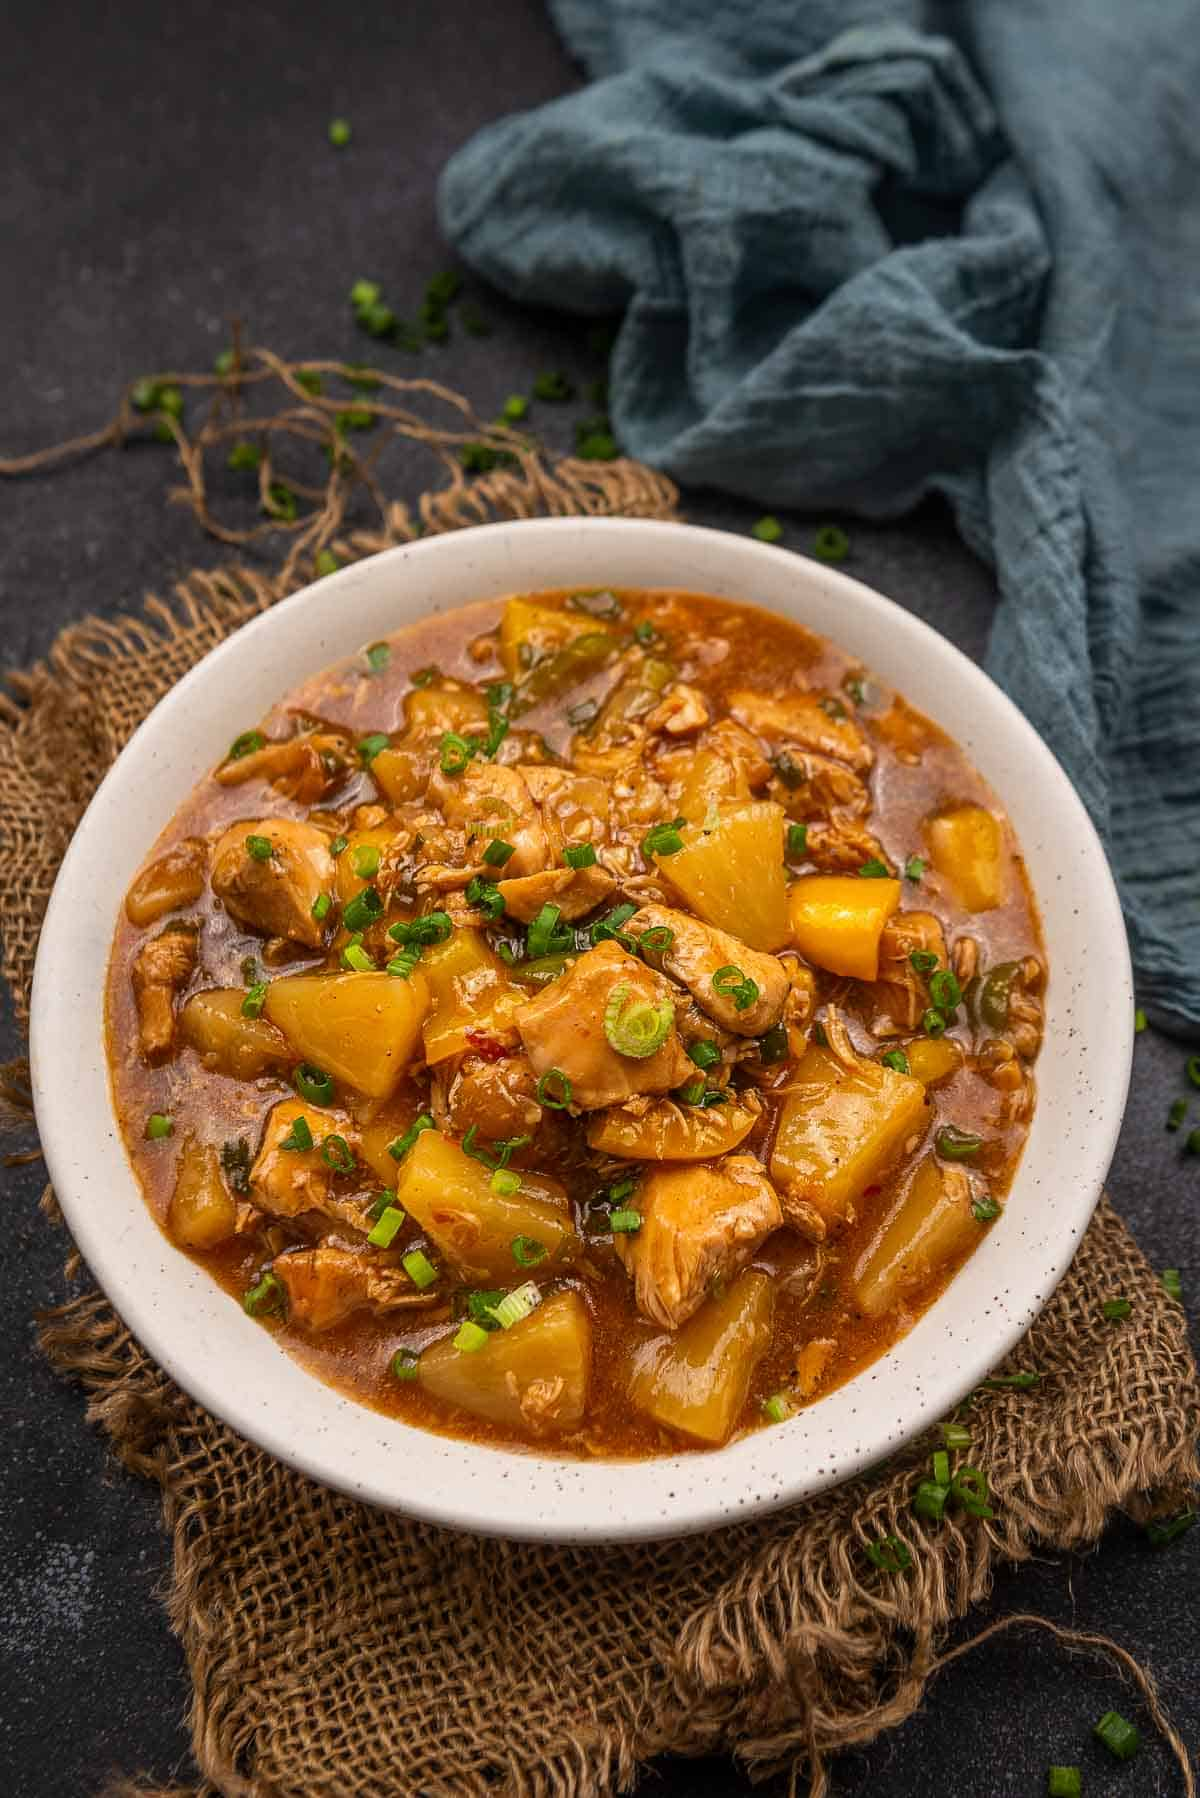 Instant pot sweet and sour chicken served in a bowl.